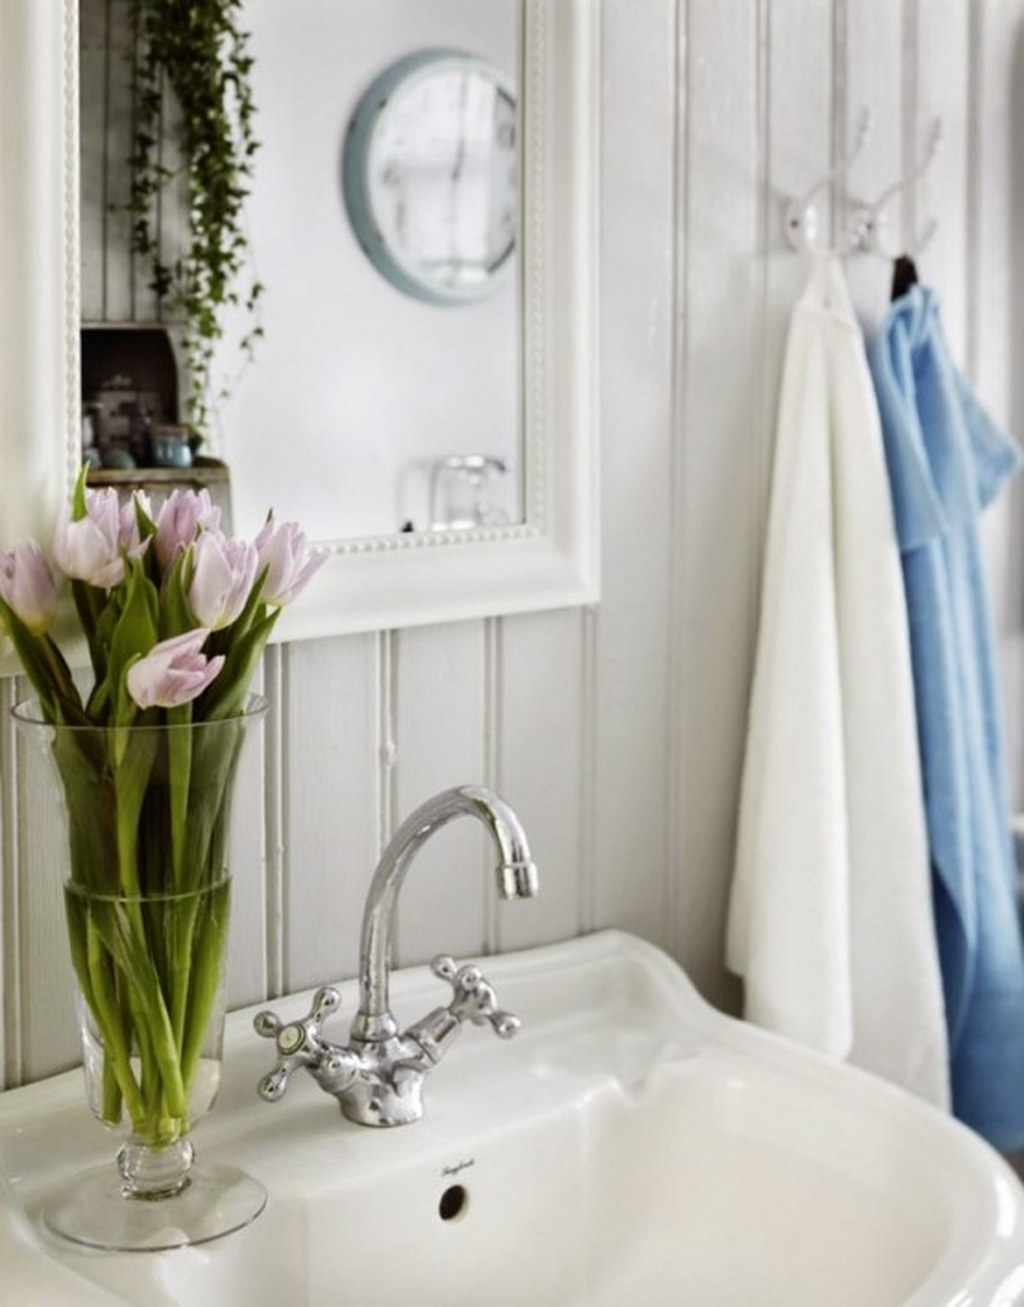 beautiful-white-sink-with-floral-ornament-in-shabby-chic-bathroom-design.jpg